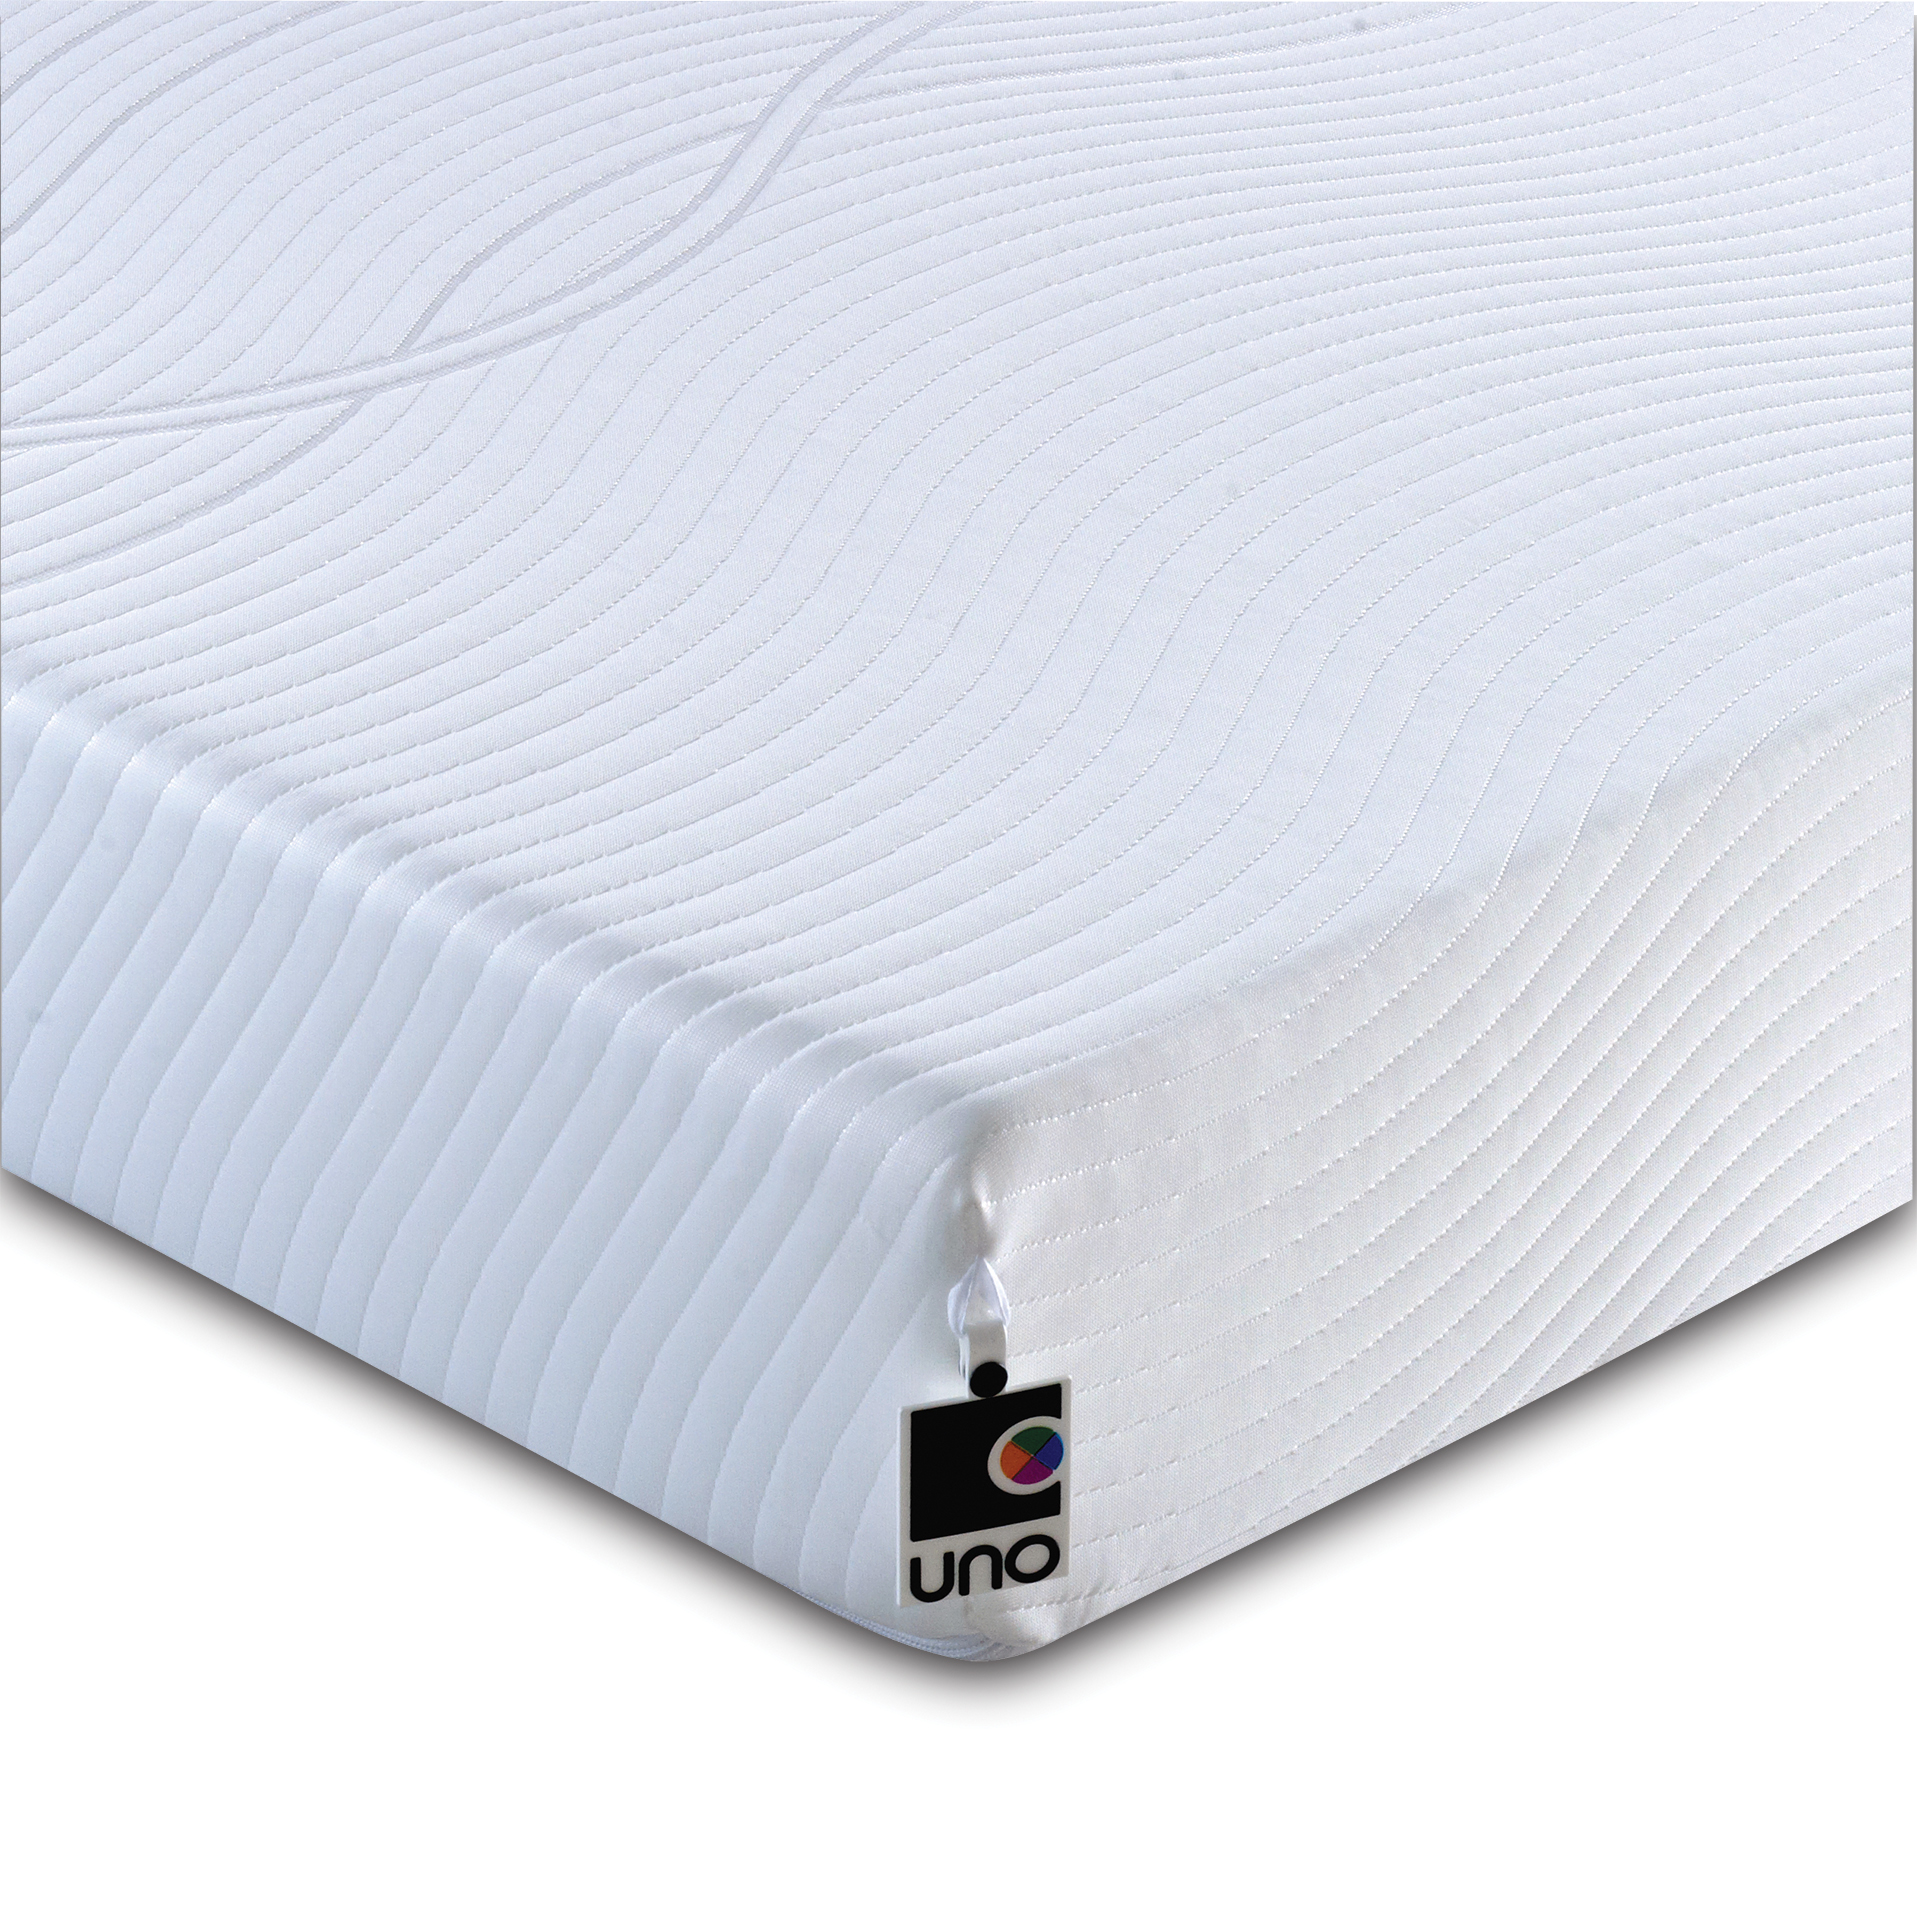 uno vitality plus memory foam mattress